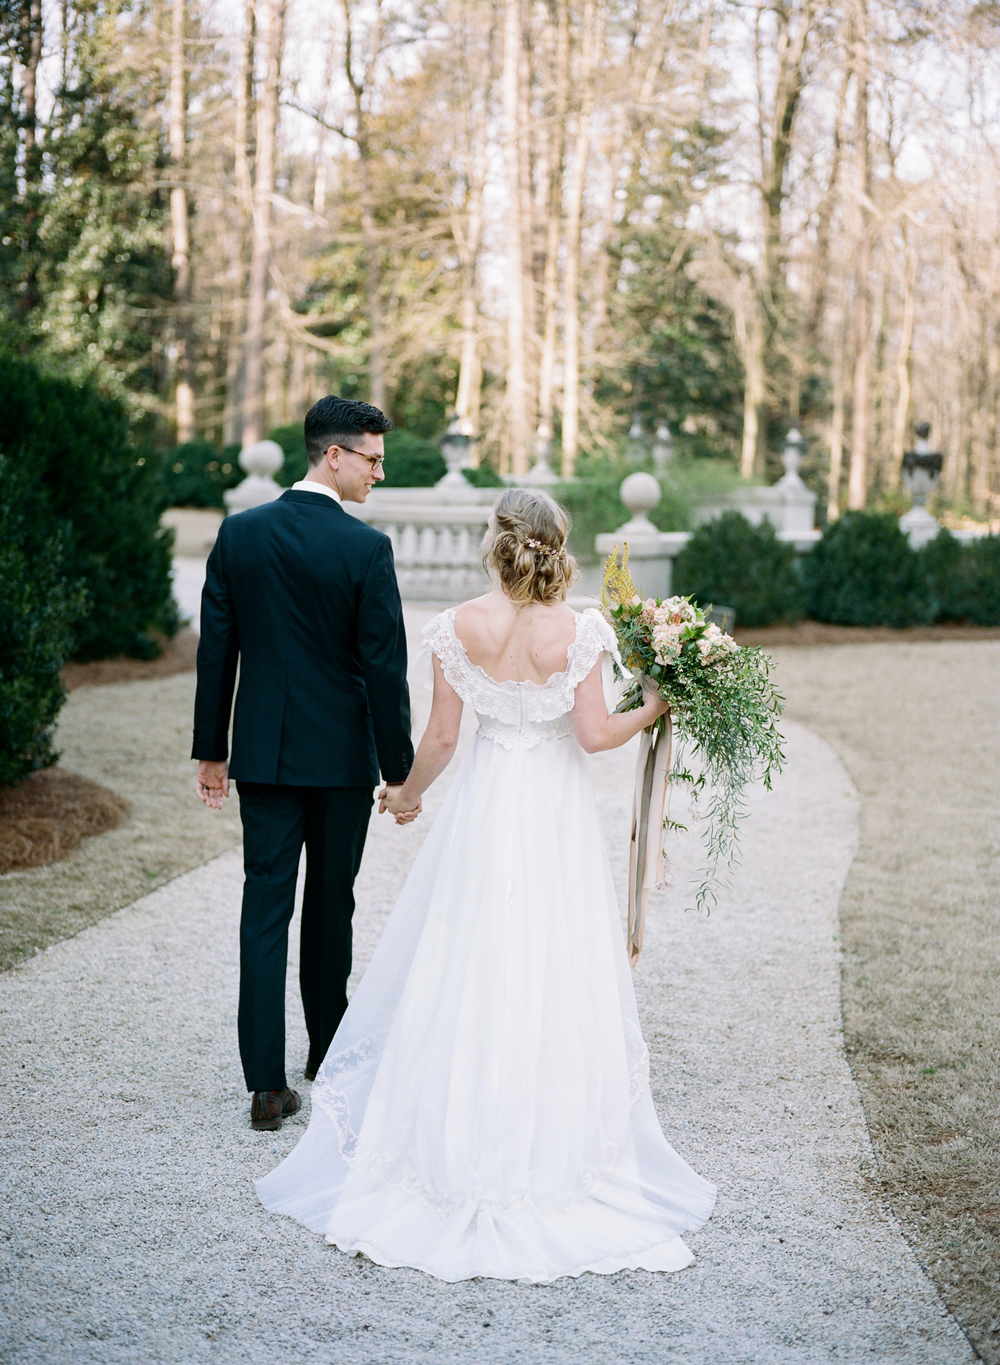 sapphireevents.com | Sapphire Events New Orleans | Luxury Wedding Planning and Design in Louisiana | The Swan House Weddings | Archetype Studio Inc | Gertie Mae's Floral Design